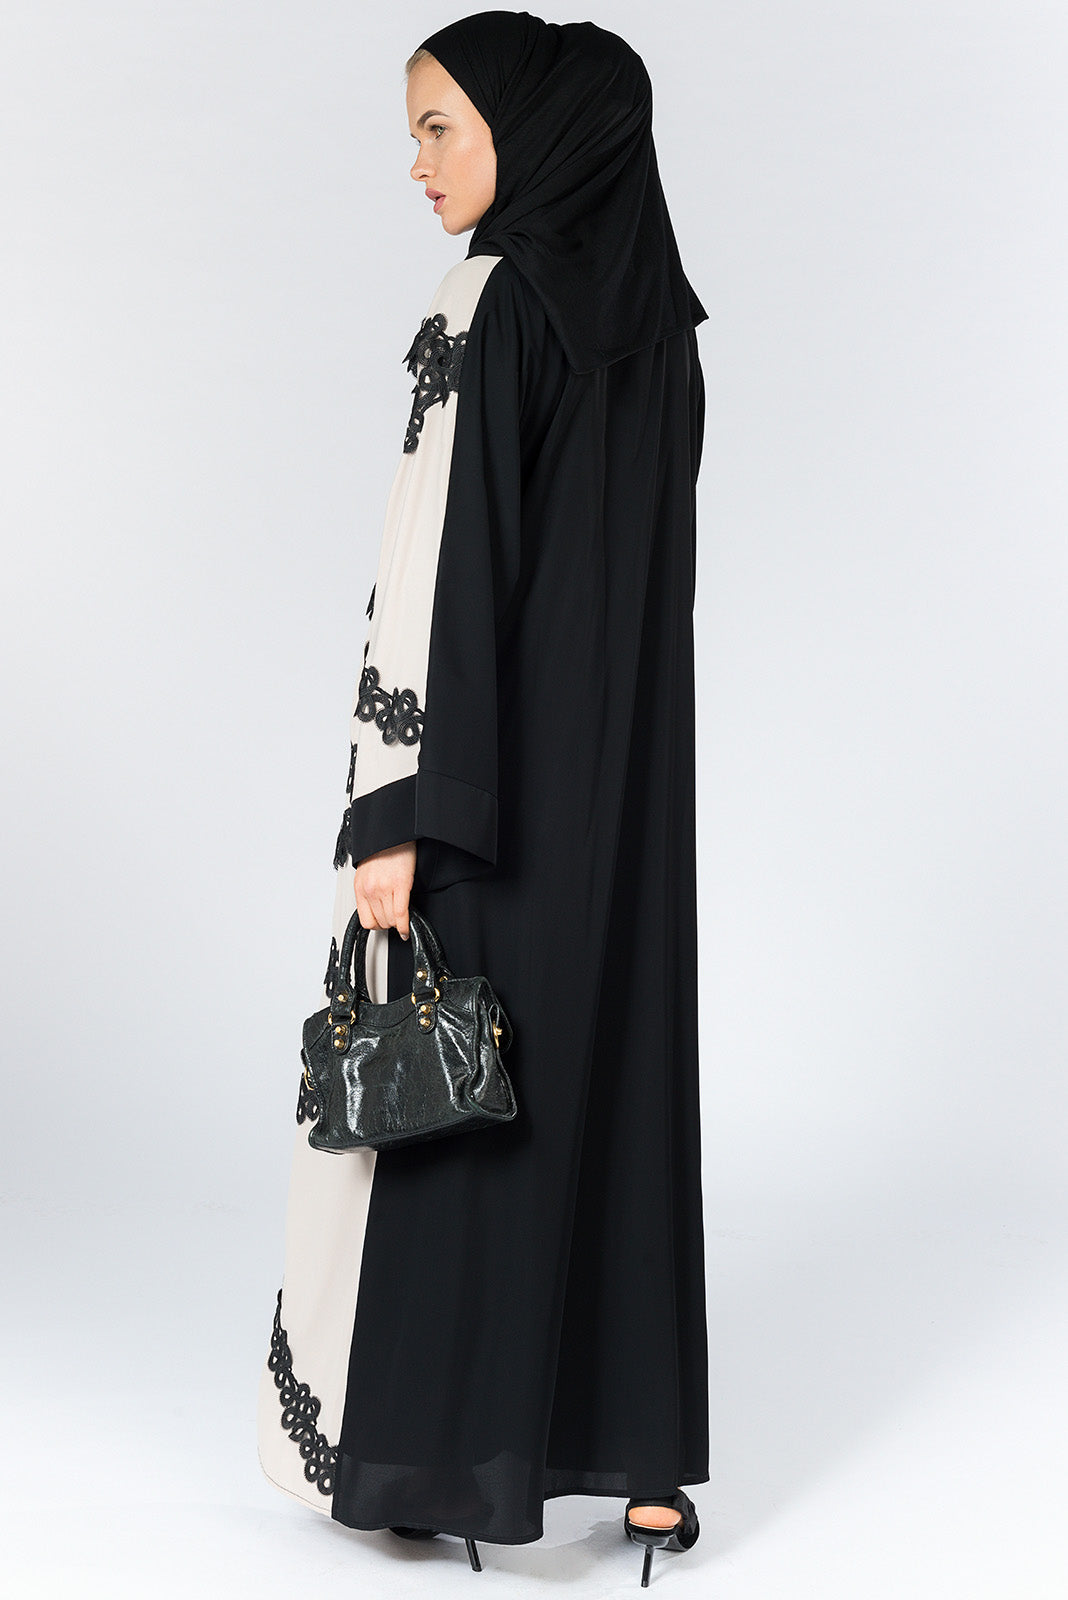 Black Open Abaya with Beige Front and Lace in Nida